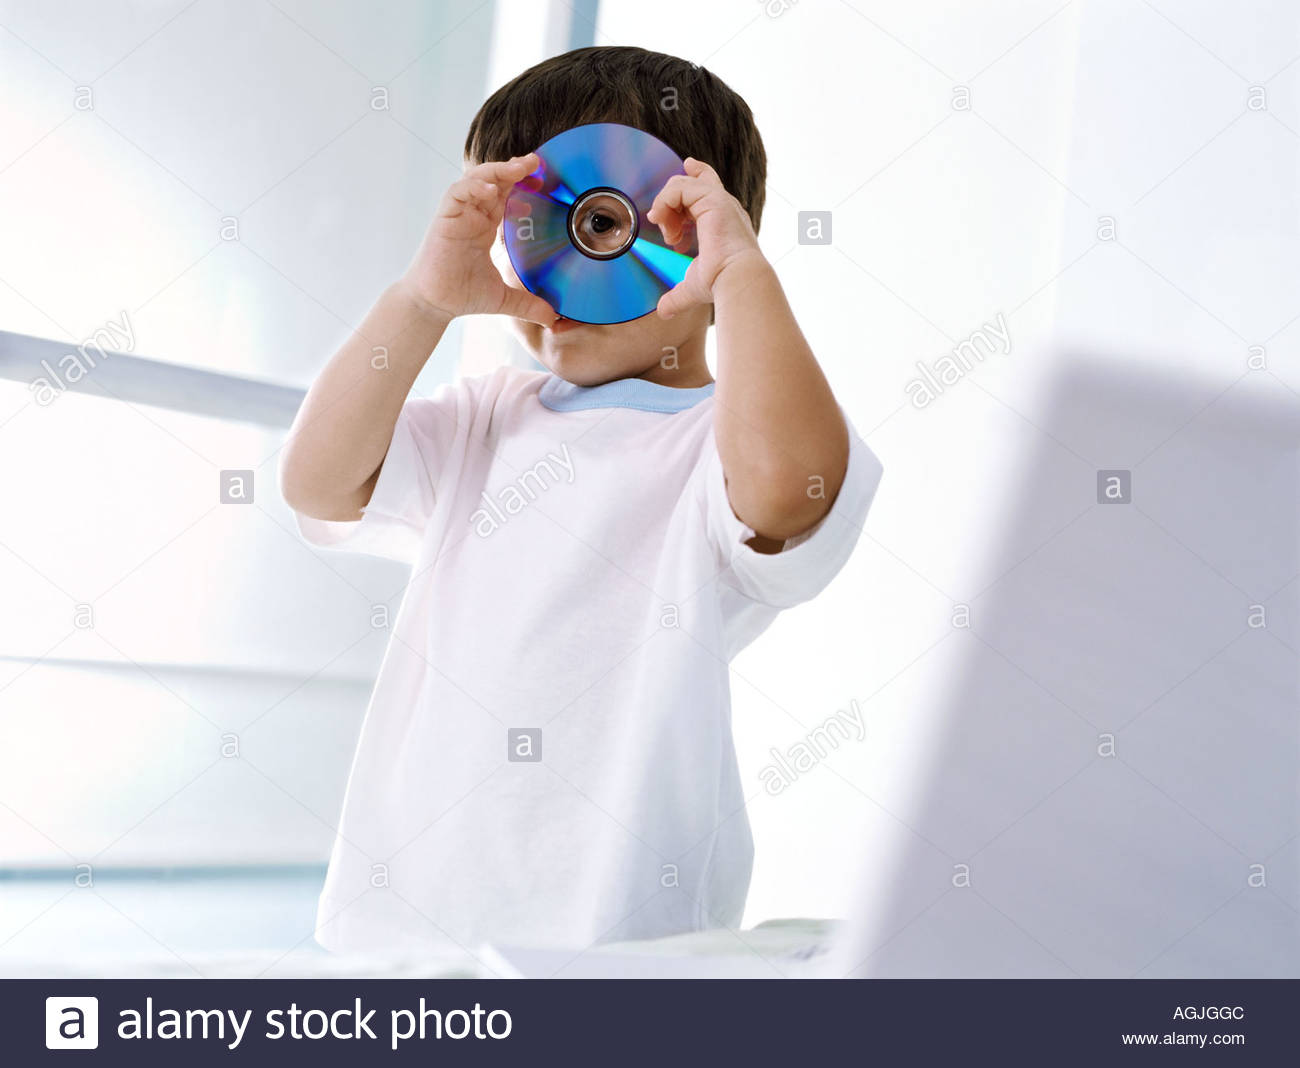 Boy looking through a compact disc - Stock Image